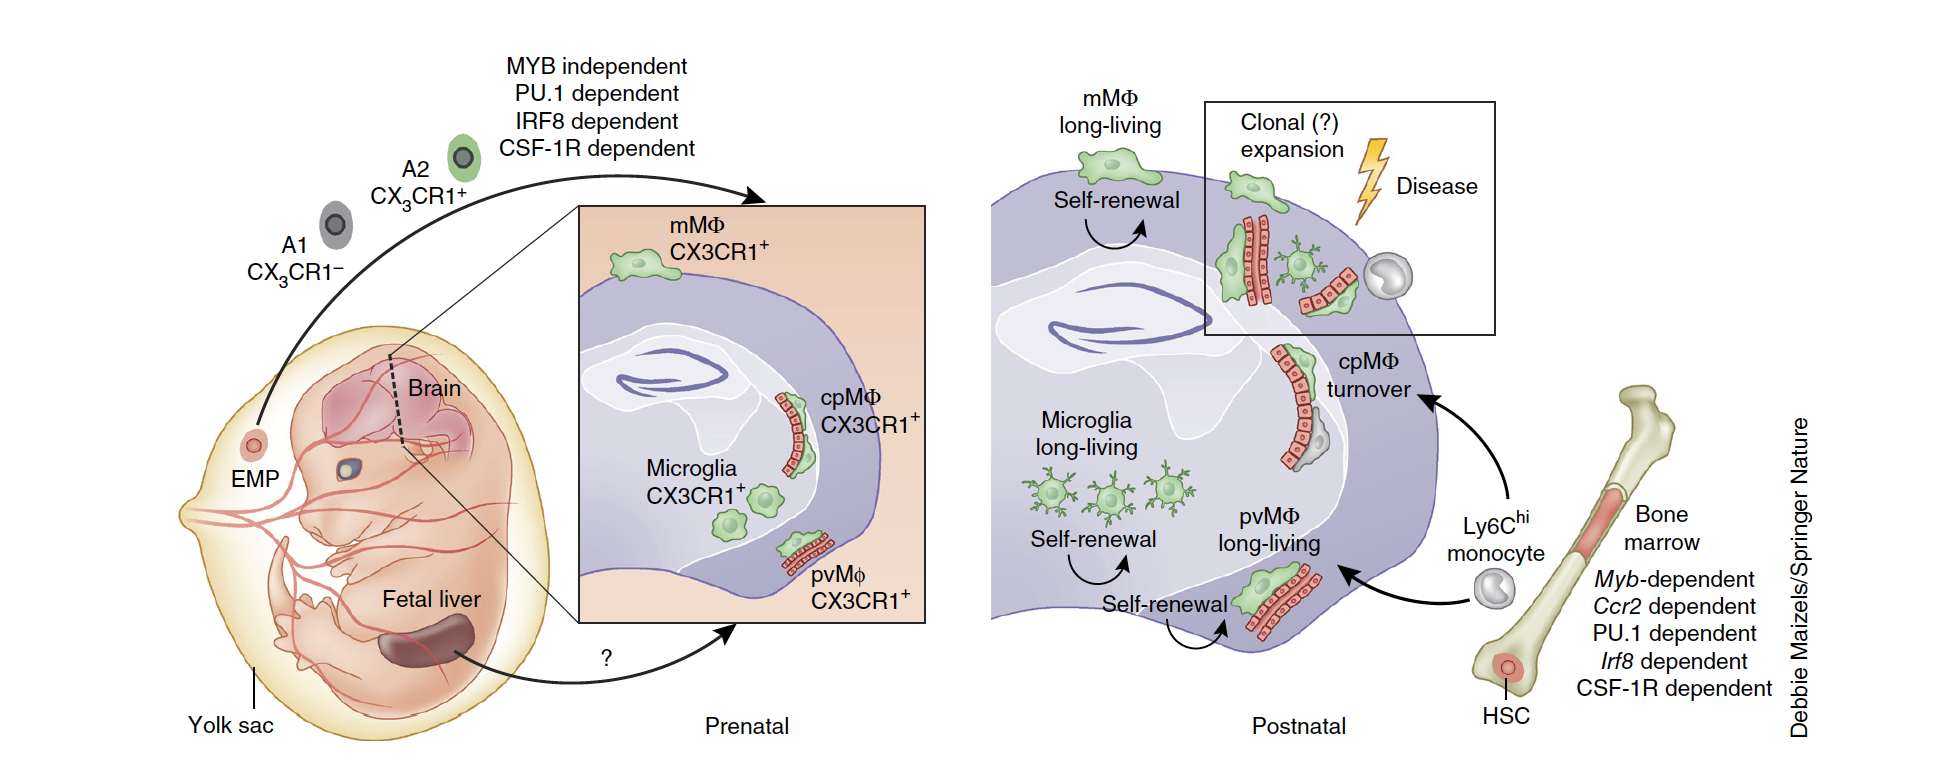 Ontogeny and homeostasis of CNS myeloid cells